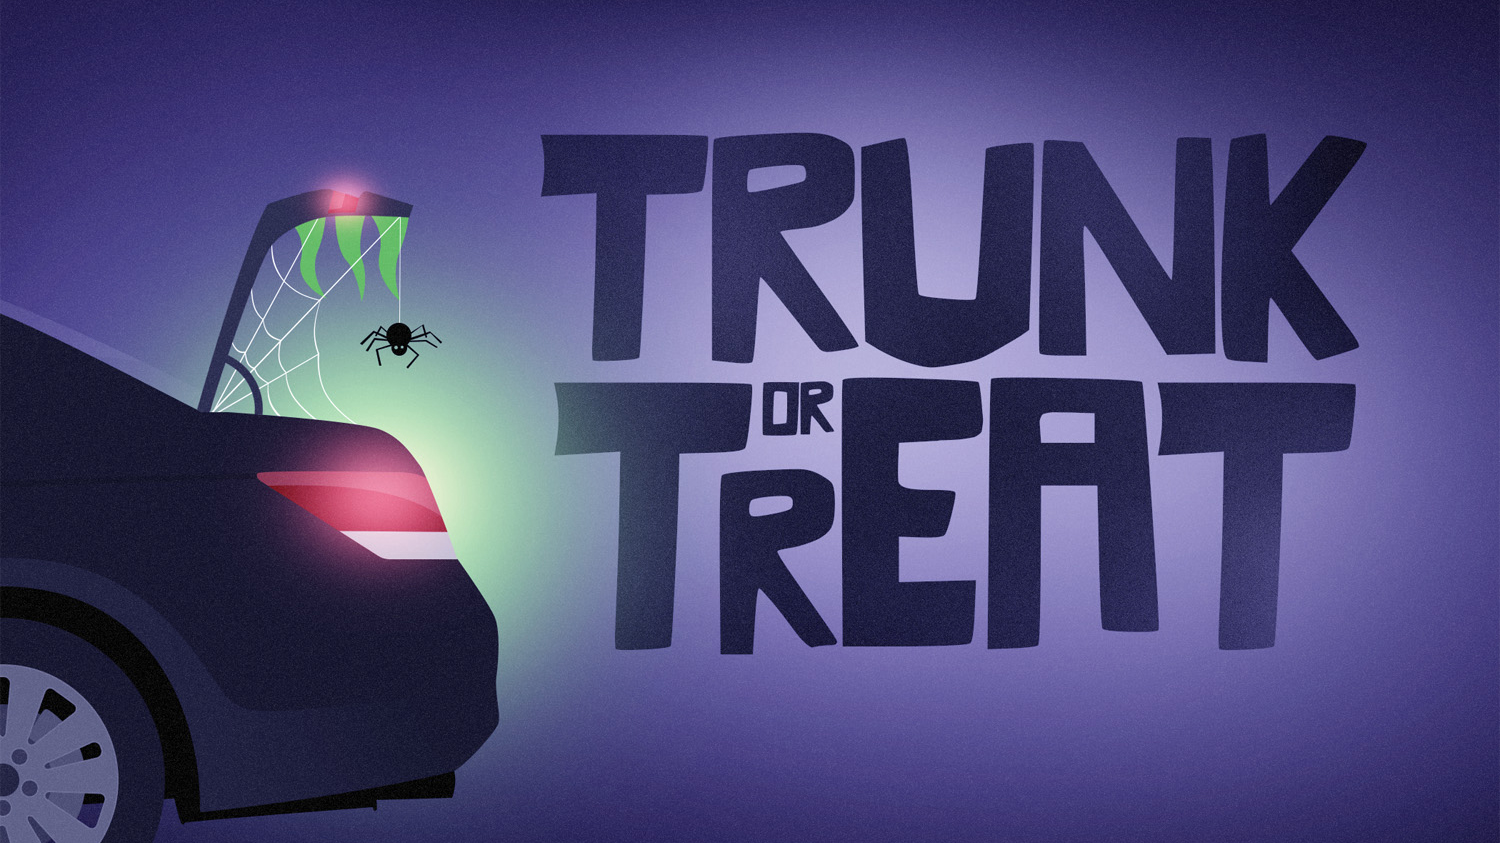 images of christian trunk or treat just b cause trunk or treat clip art for church bulletin trunk or treat clip art png